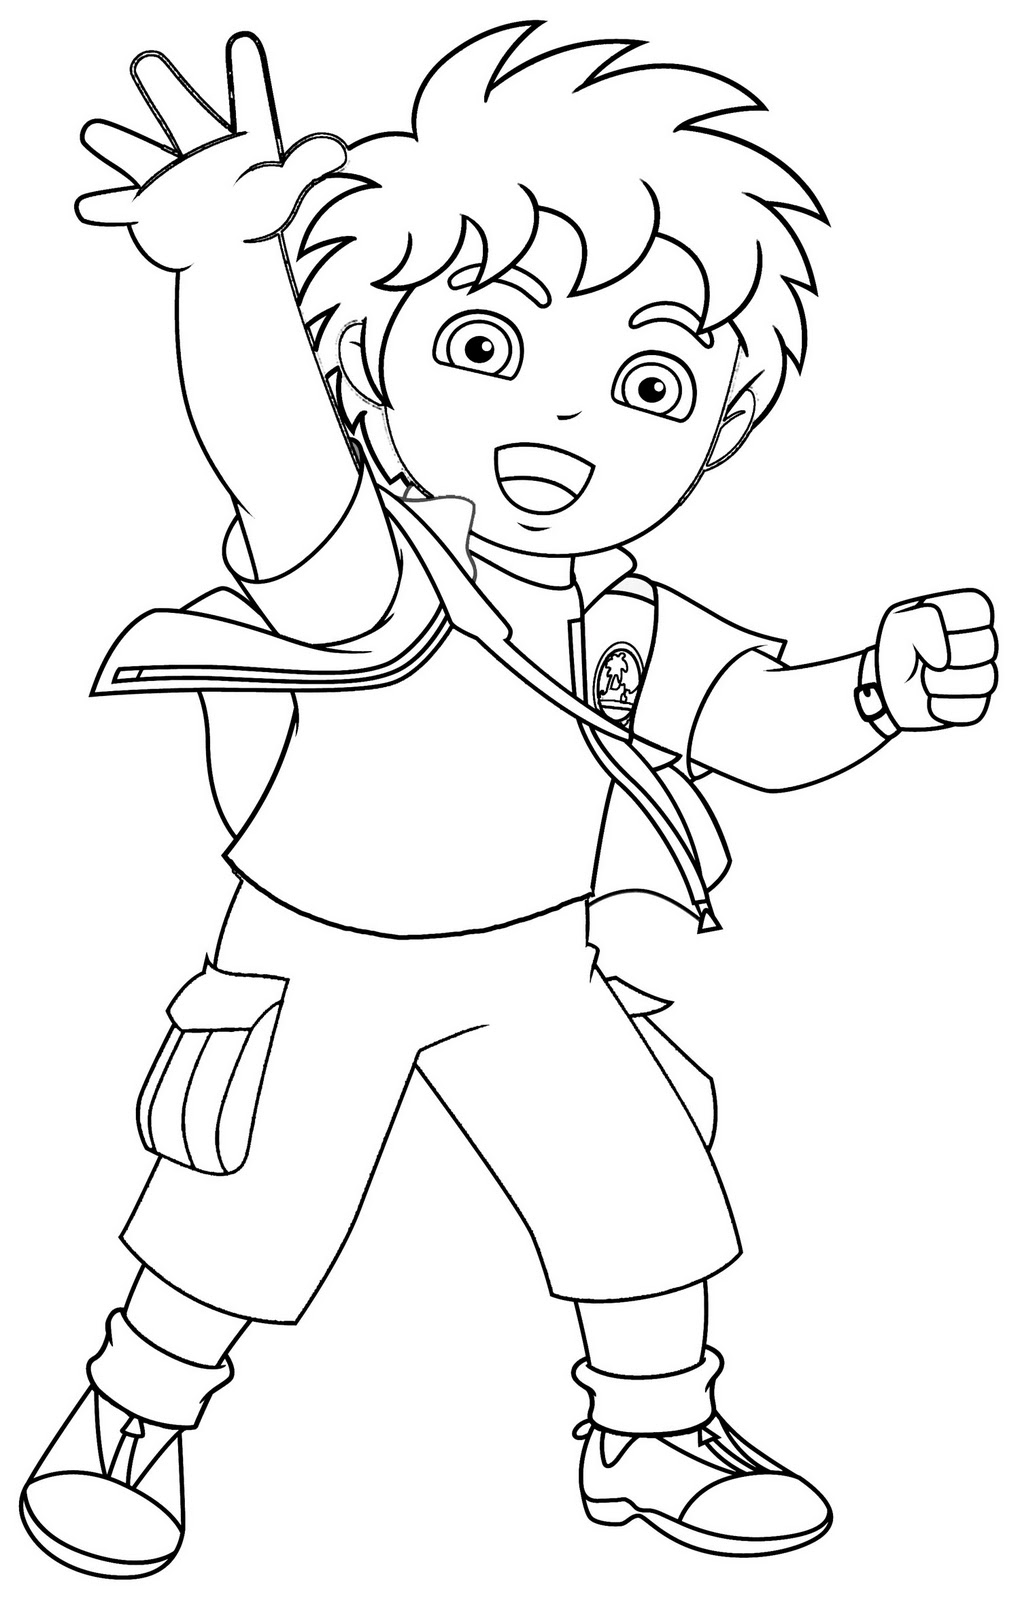 Diego To Color For Children Diego Kids Coloring Pages